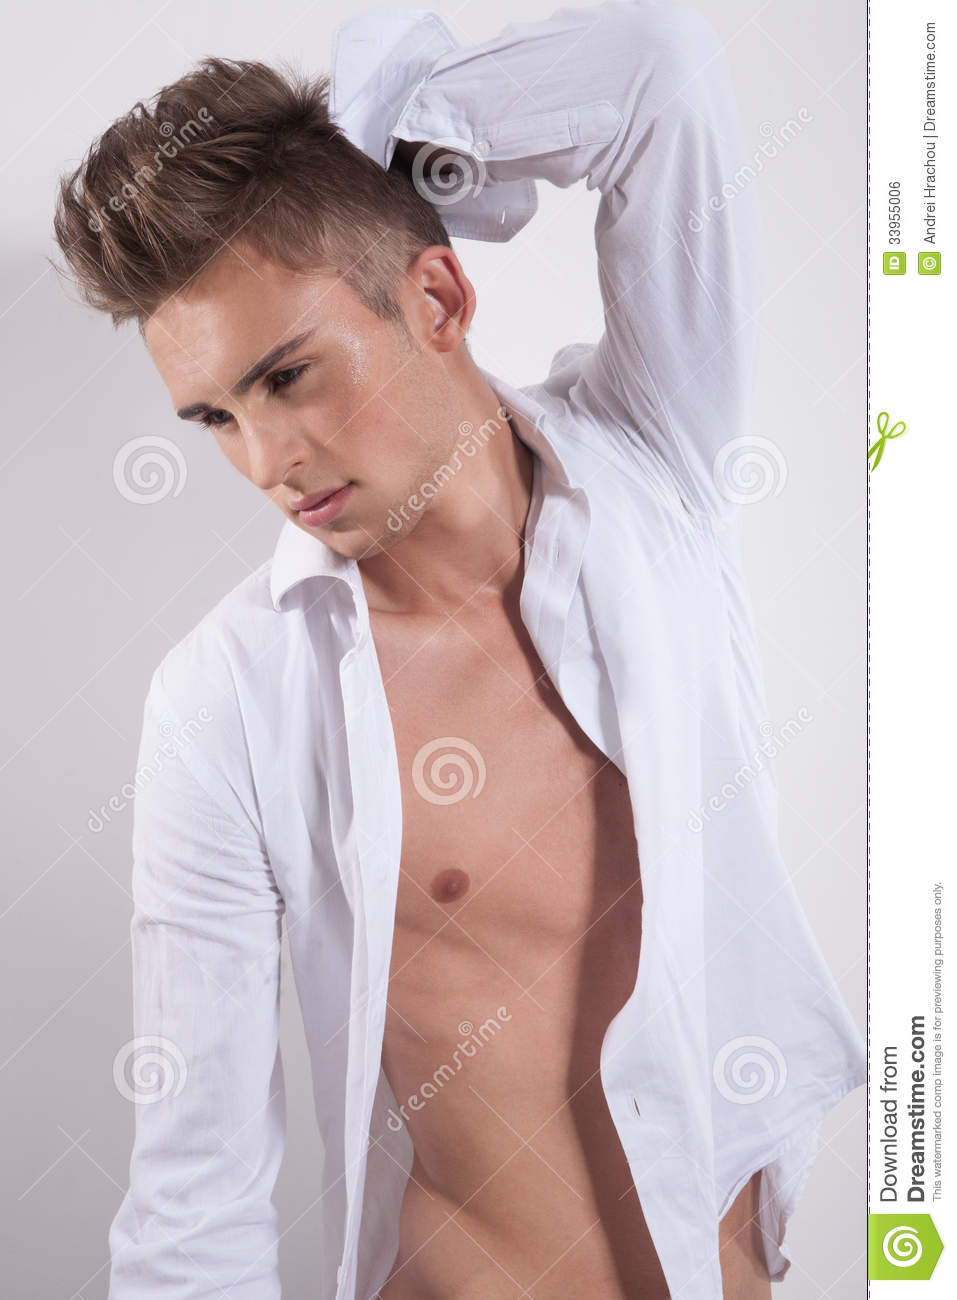 Young Fashion Man Looking Down Stock Photo Image Of Hair